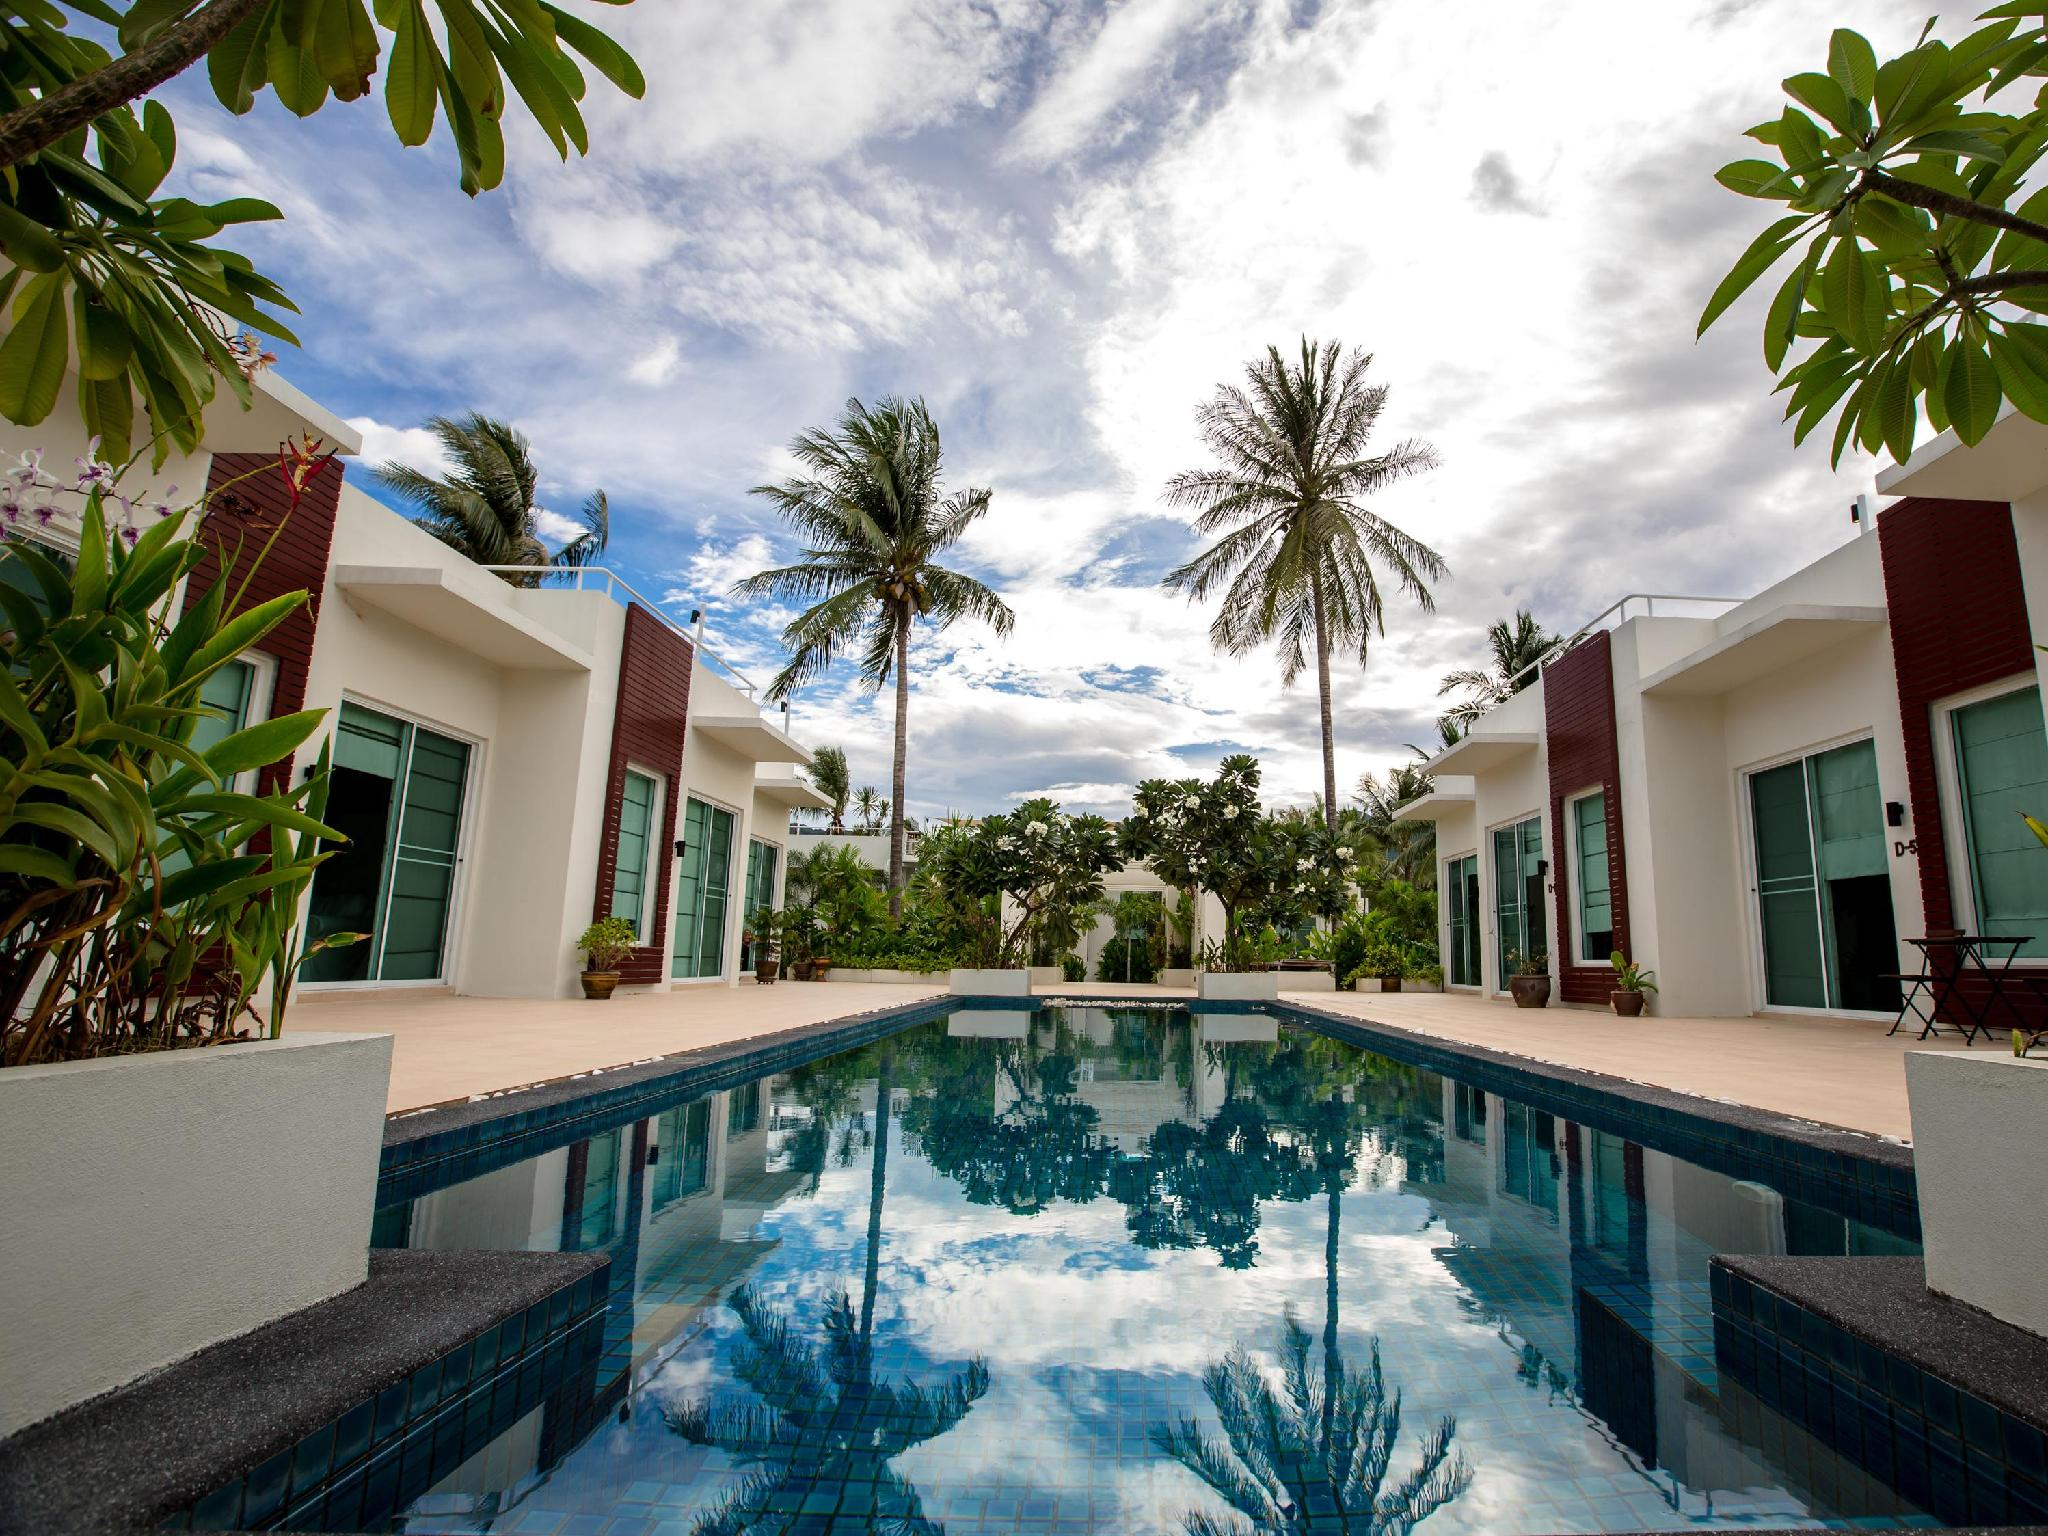 The Beach Village Resort - Hotell och Boende i Thailand i Asien